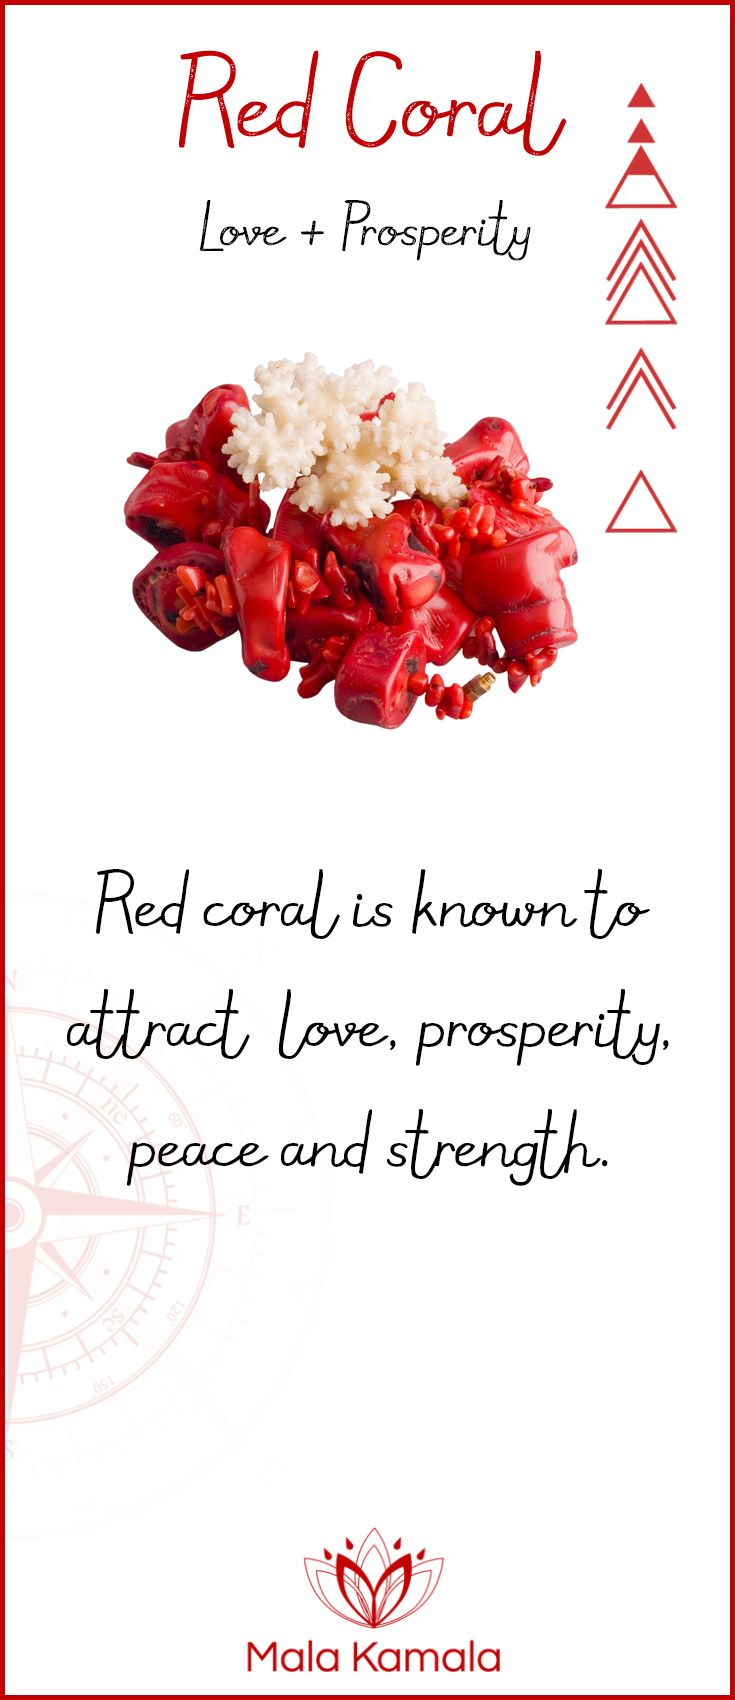 Pin To Save, Tap To Shop The Gem. What is the meaning and crystal and chakra healing properties of red coral? A stone for love and prosperity. Mala Kamala Mala Beads - Malas, Mala Beads, Mala Bracelets, Tiny Intentions, Baby Necklaces, Yoga Jewelry, Meditation Jewelry, Baltic Amber Necklaces, Gemstone Jewelry, Chakra Healing and Crystal Healing Jewelry, Mala Necklaces, Prayer Beads, Sacred Jewelry, Bohemian Boho Jewelry, Childrens and Babies Jewelry.